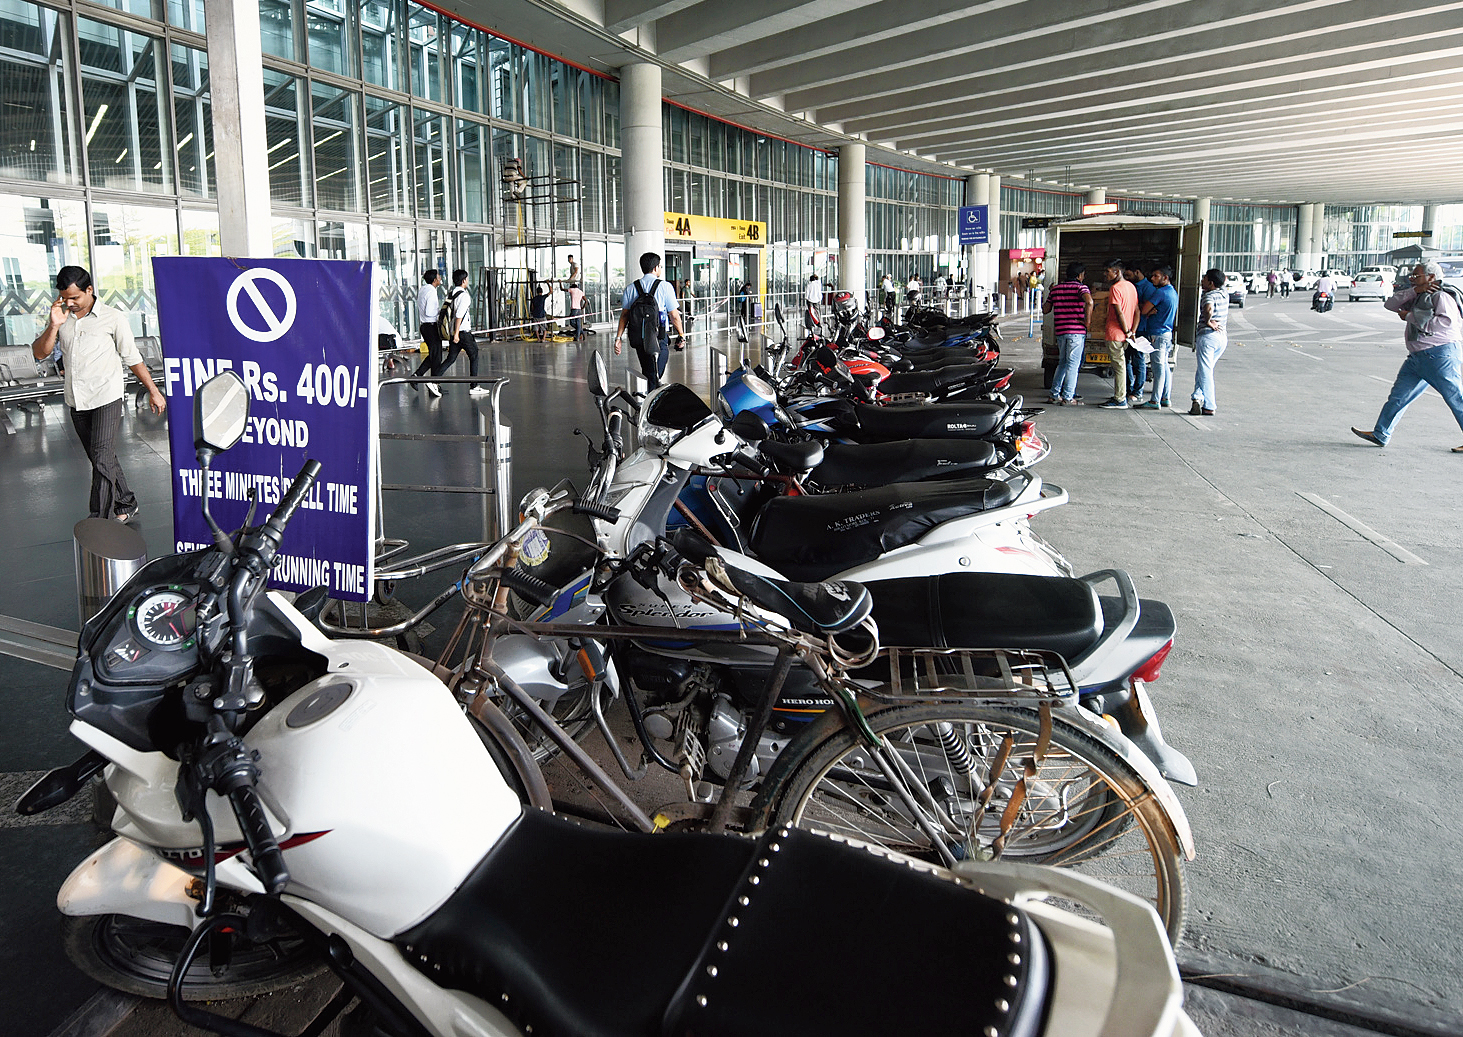 """Two-wheelers parked in front of the Calcutta airport's terminal building where a signboard reads """"Fine Rs 400 beyond three minutes dwell time  and seven minutes running time""""."""